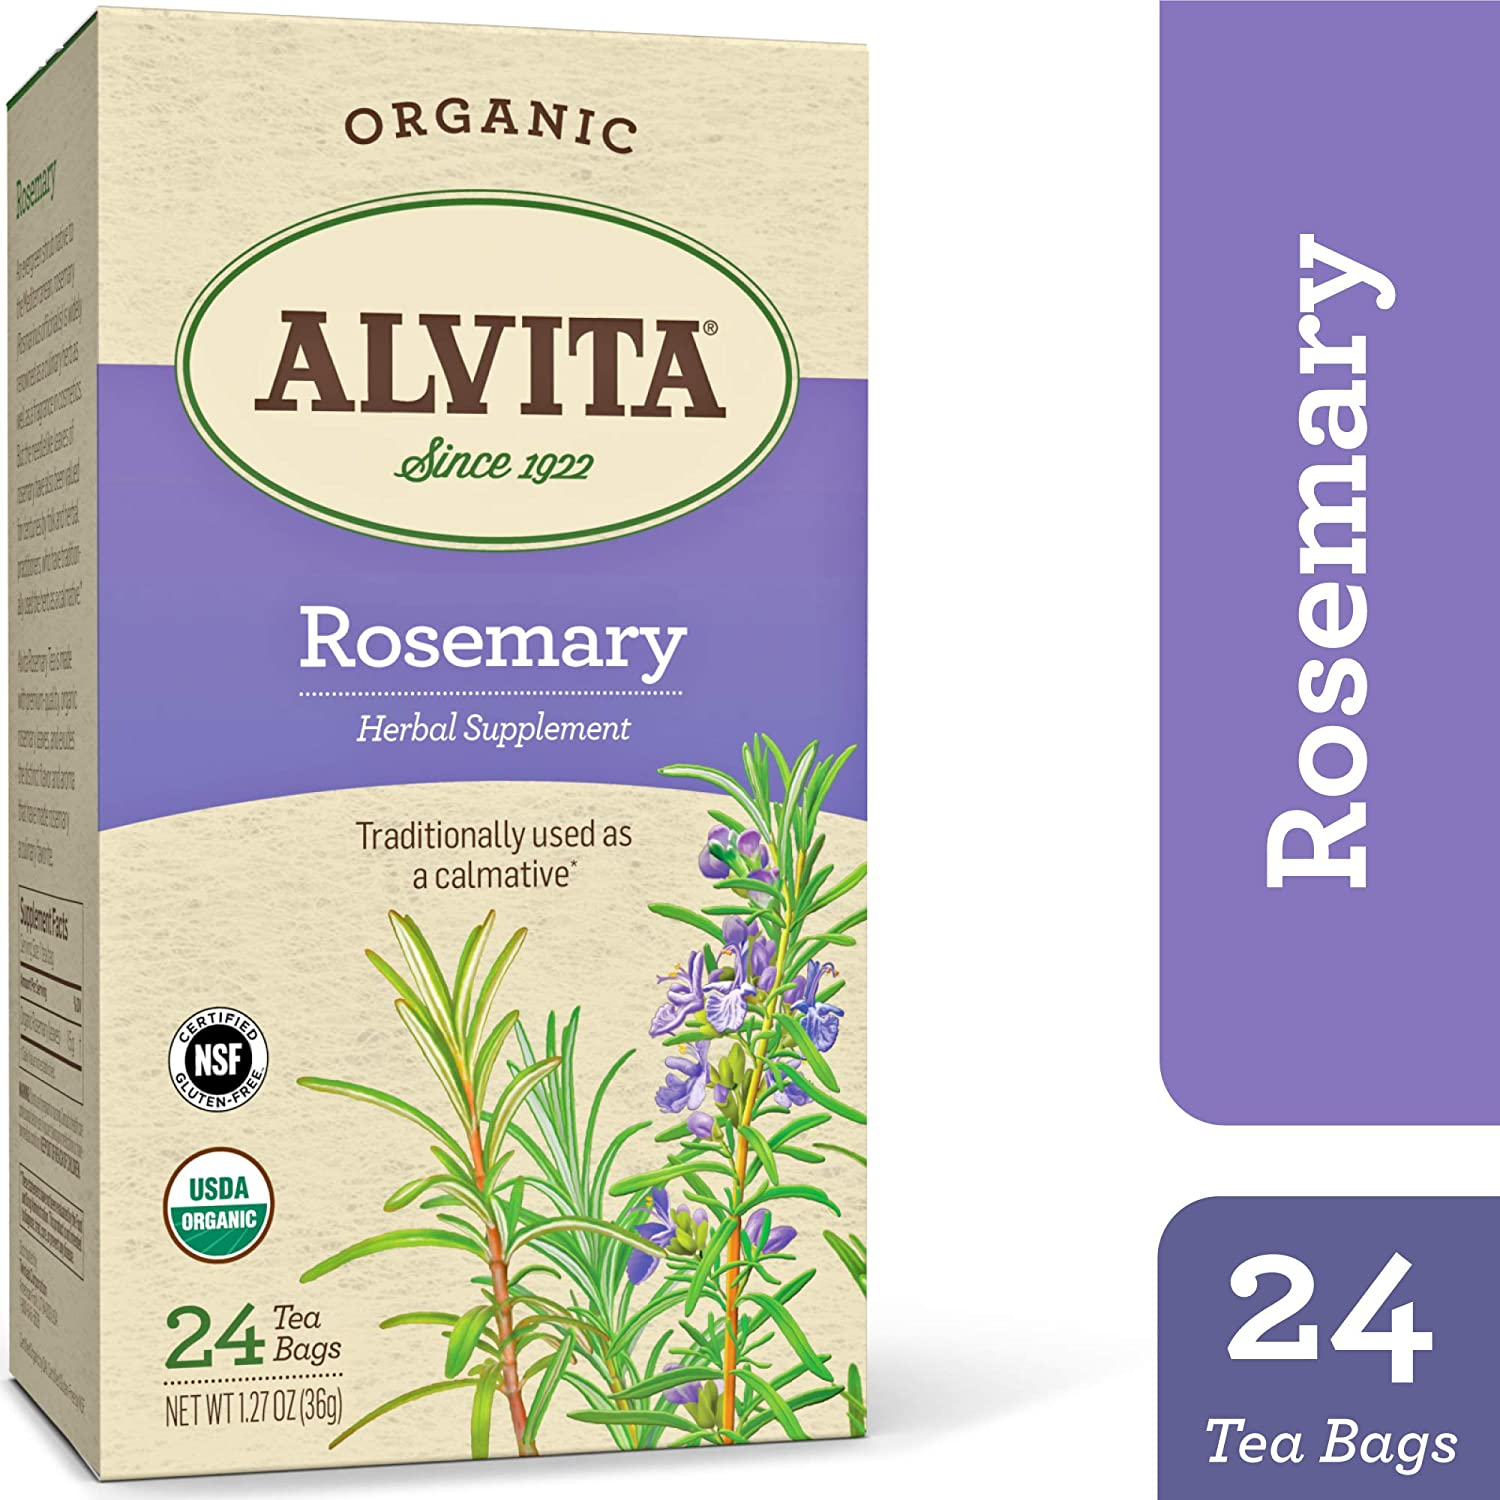 Alvita Organic Rosemary Herbal Tea - Made with Premium Quality Organic Rosemary, And DistinctFlavor and Culinary Aroma, 24 Tea Bags